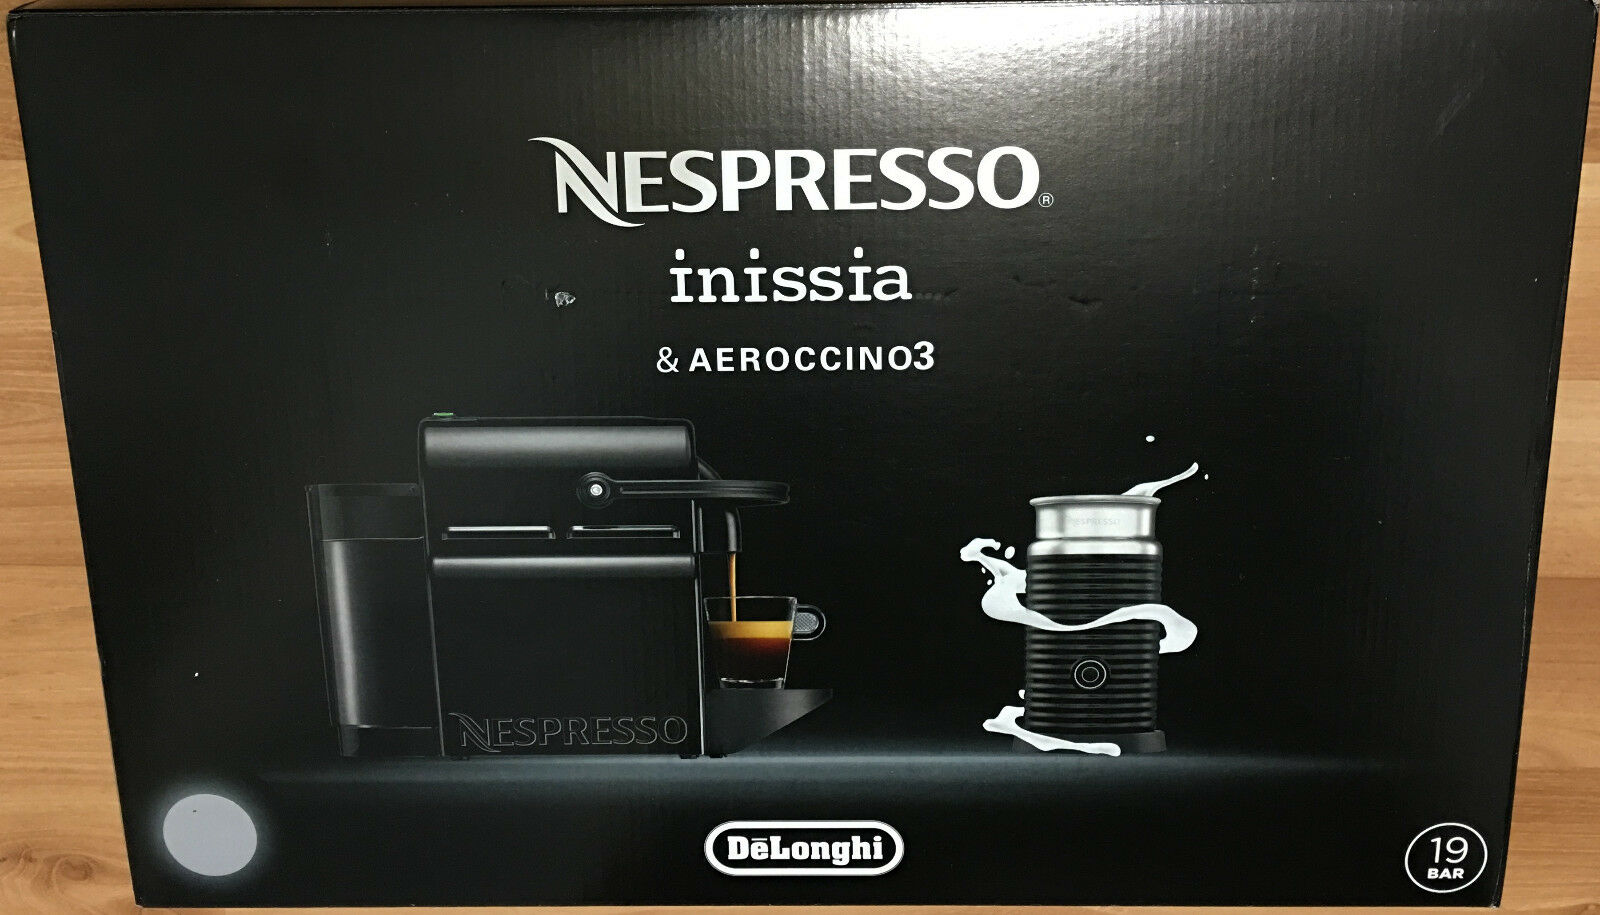 NEW Nespresso Inissia RED Espresso Machine W/ Frother Lungo